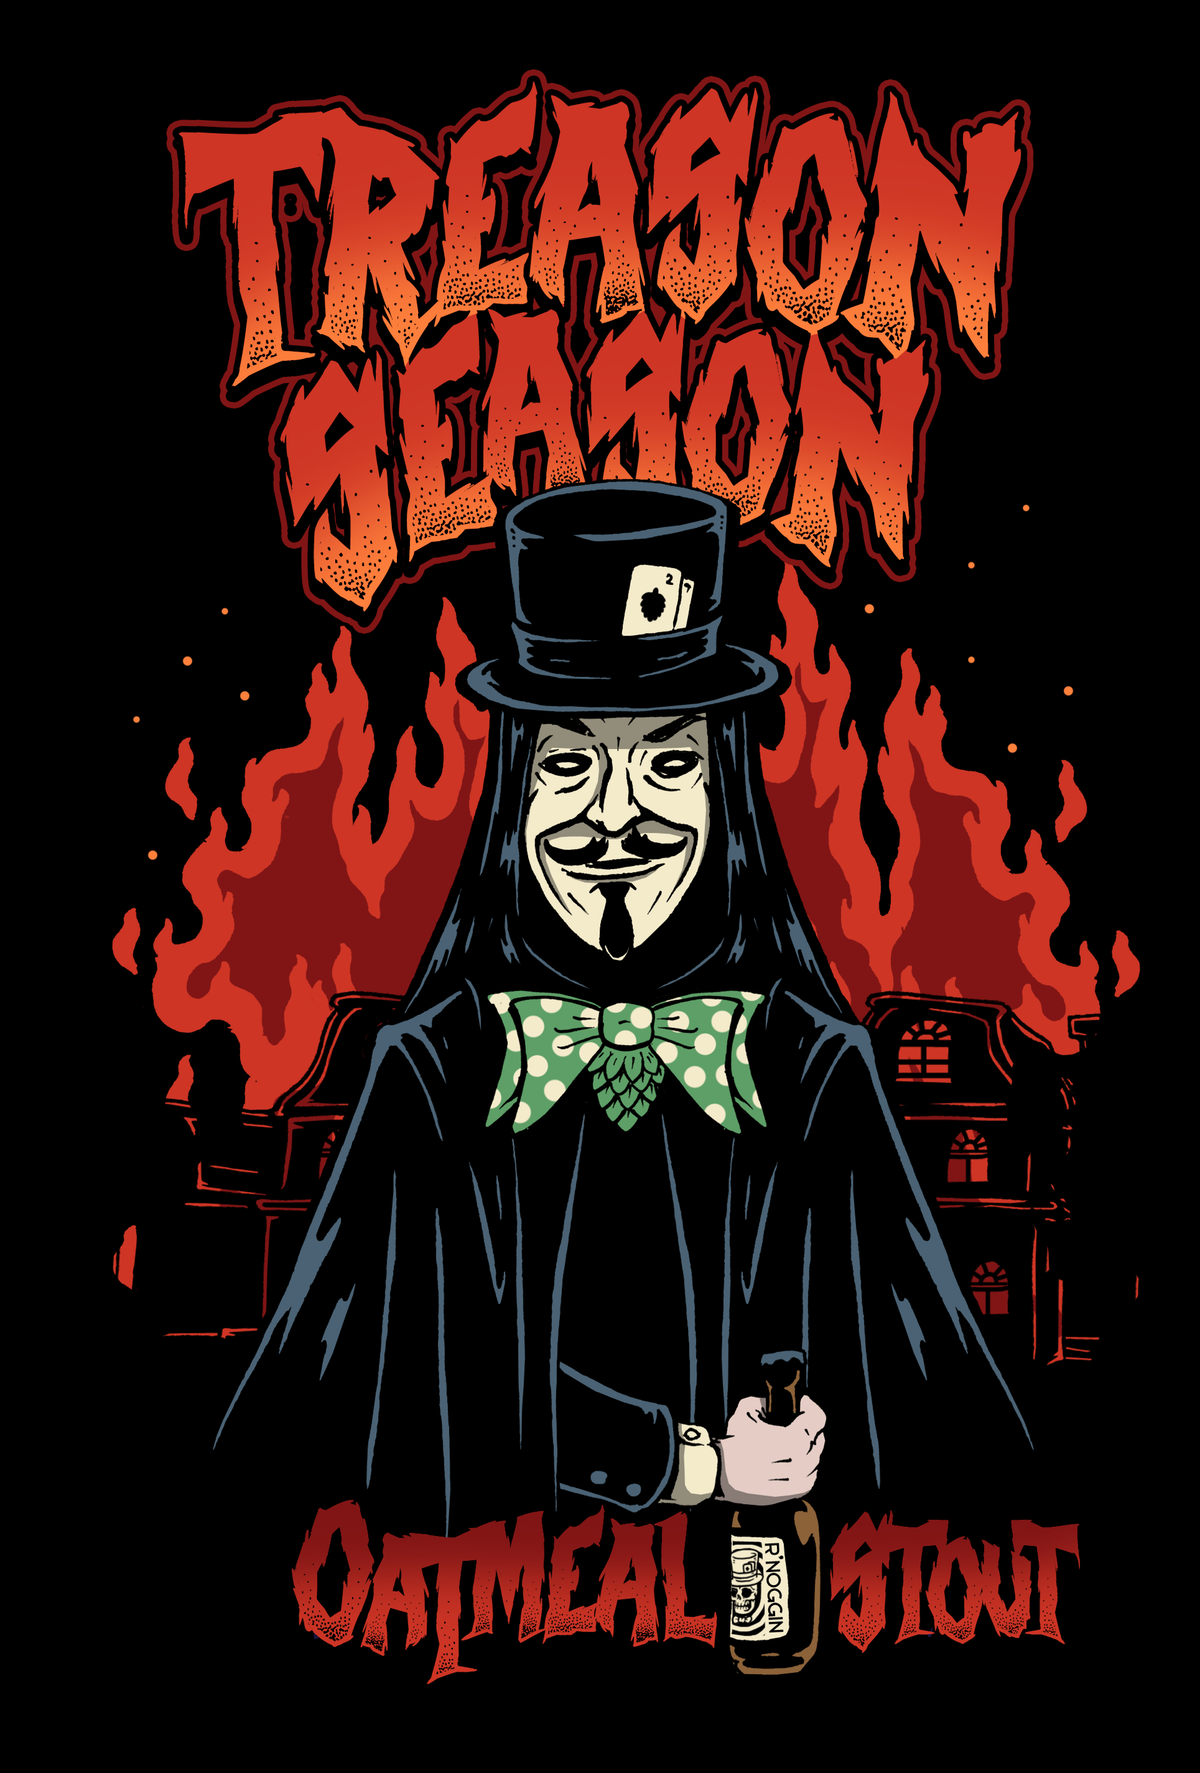 Treason Season - Oatmeal Stout